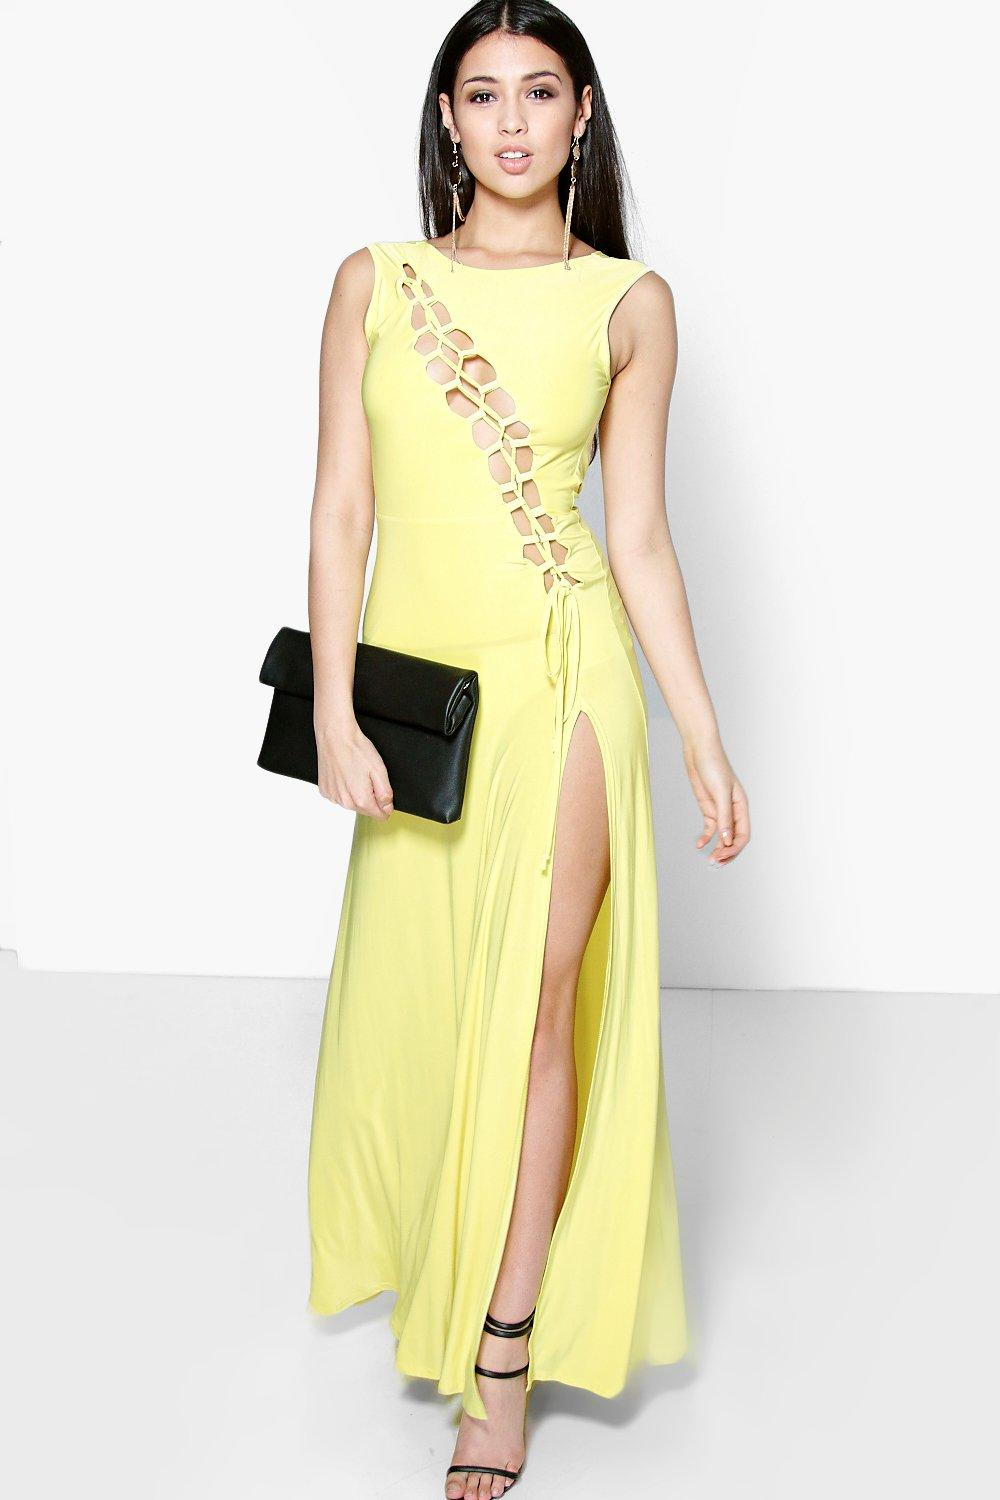 Caroline Slinky Asymmetric Lace Up Maxi Dress at boohoo.com